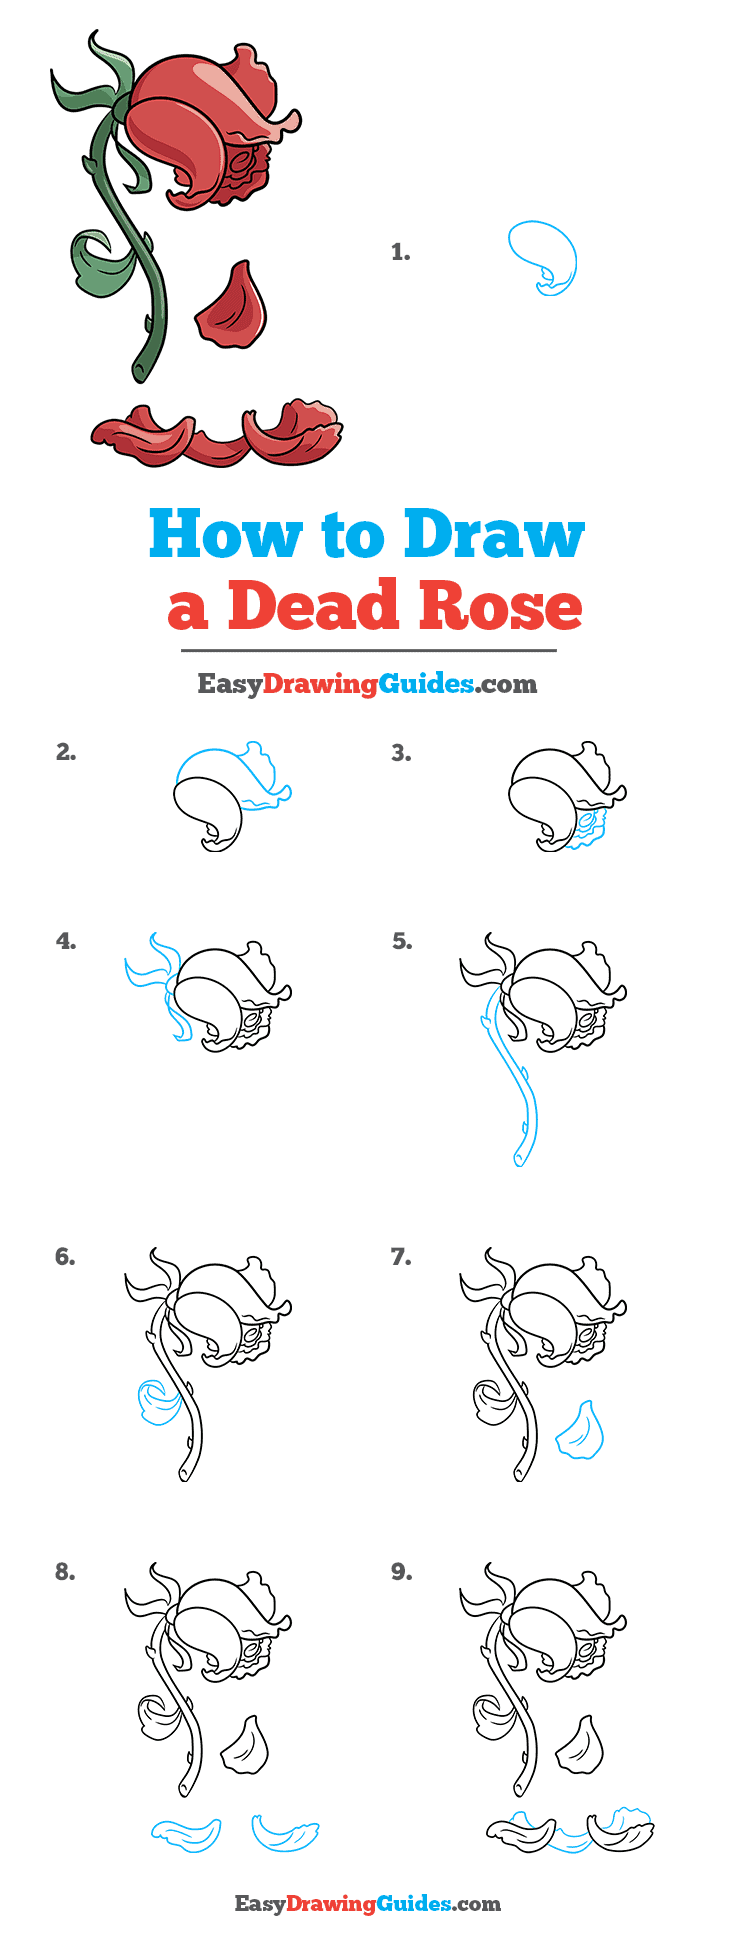 How to Draw a Dead Rose Step by Step Tutorial Image